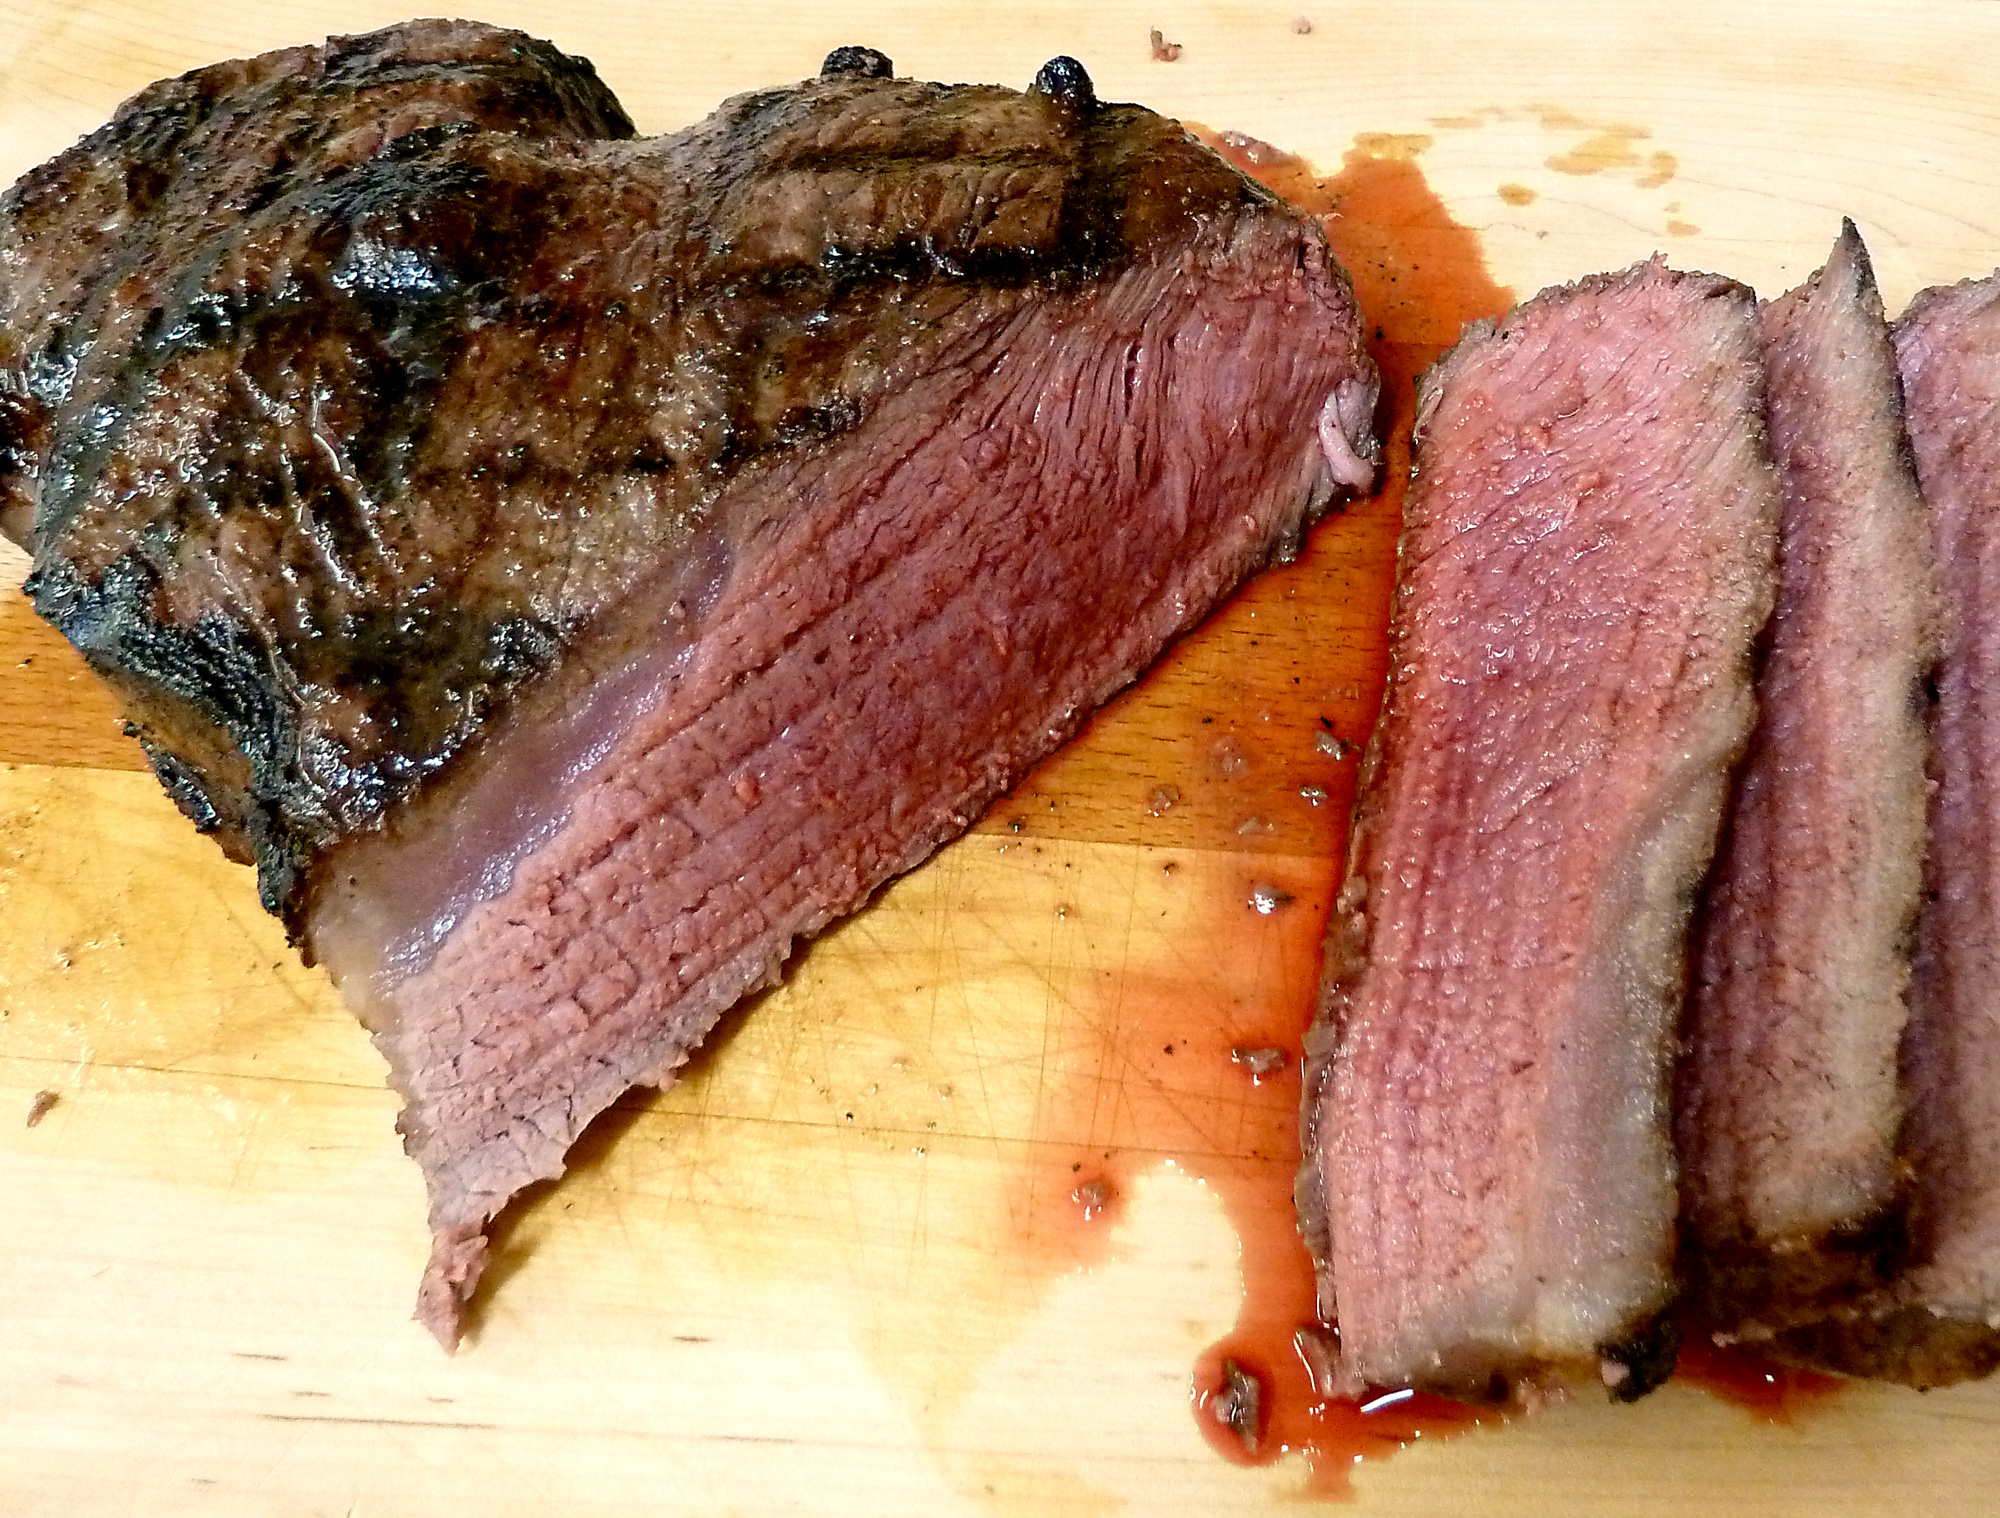 London broil has been marinated and grilled to juicy perfection, then sliced against the grain for maximum tenderness.